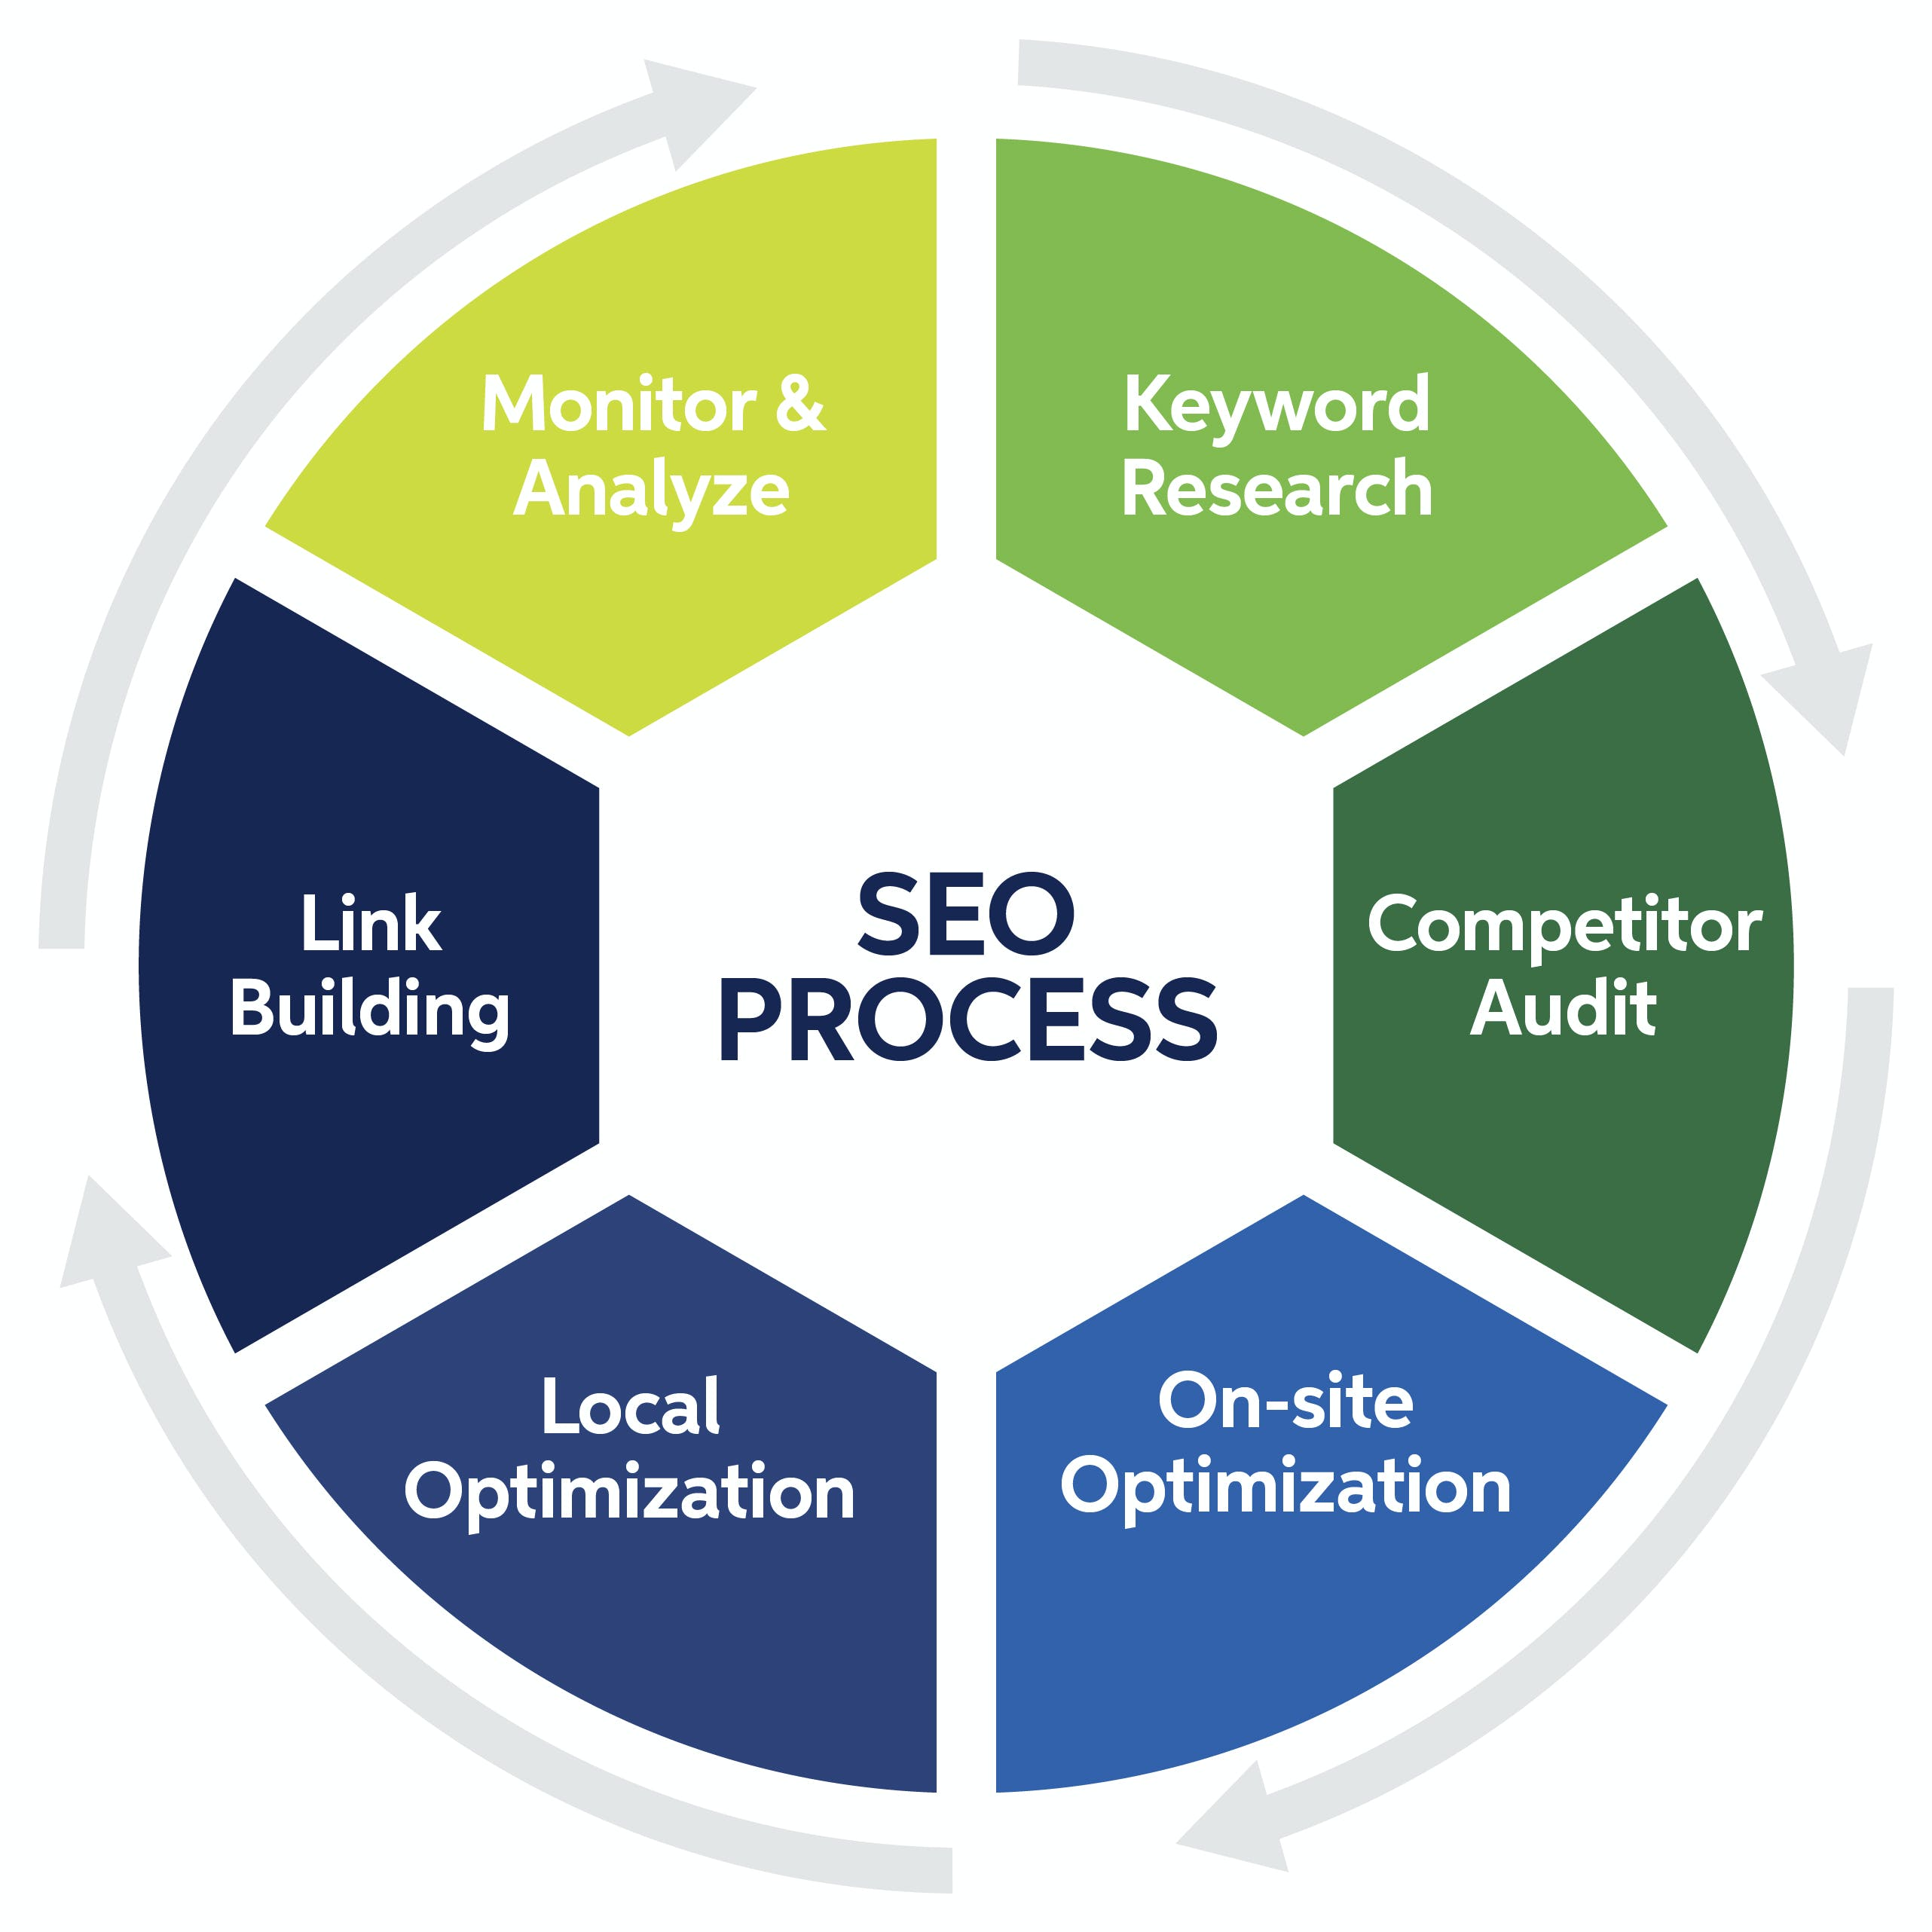 b2b search engine optimization process sagefrog